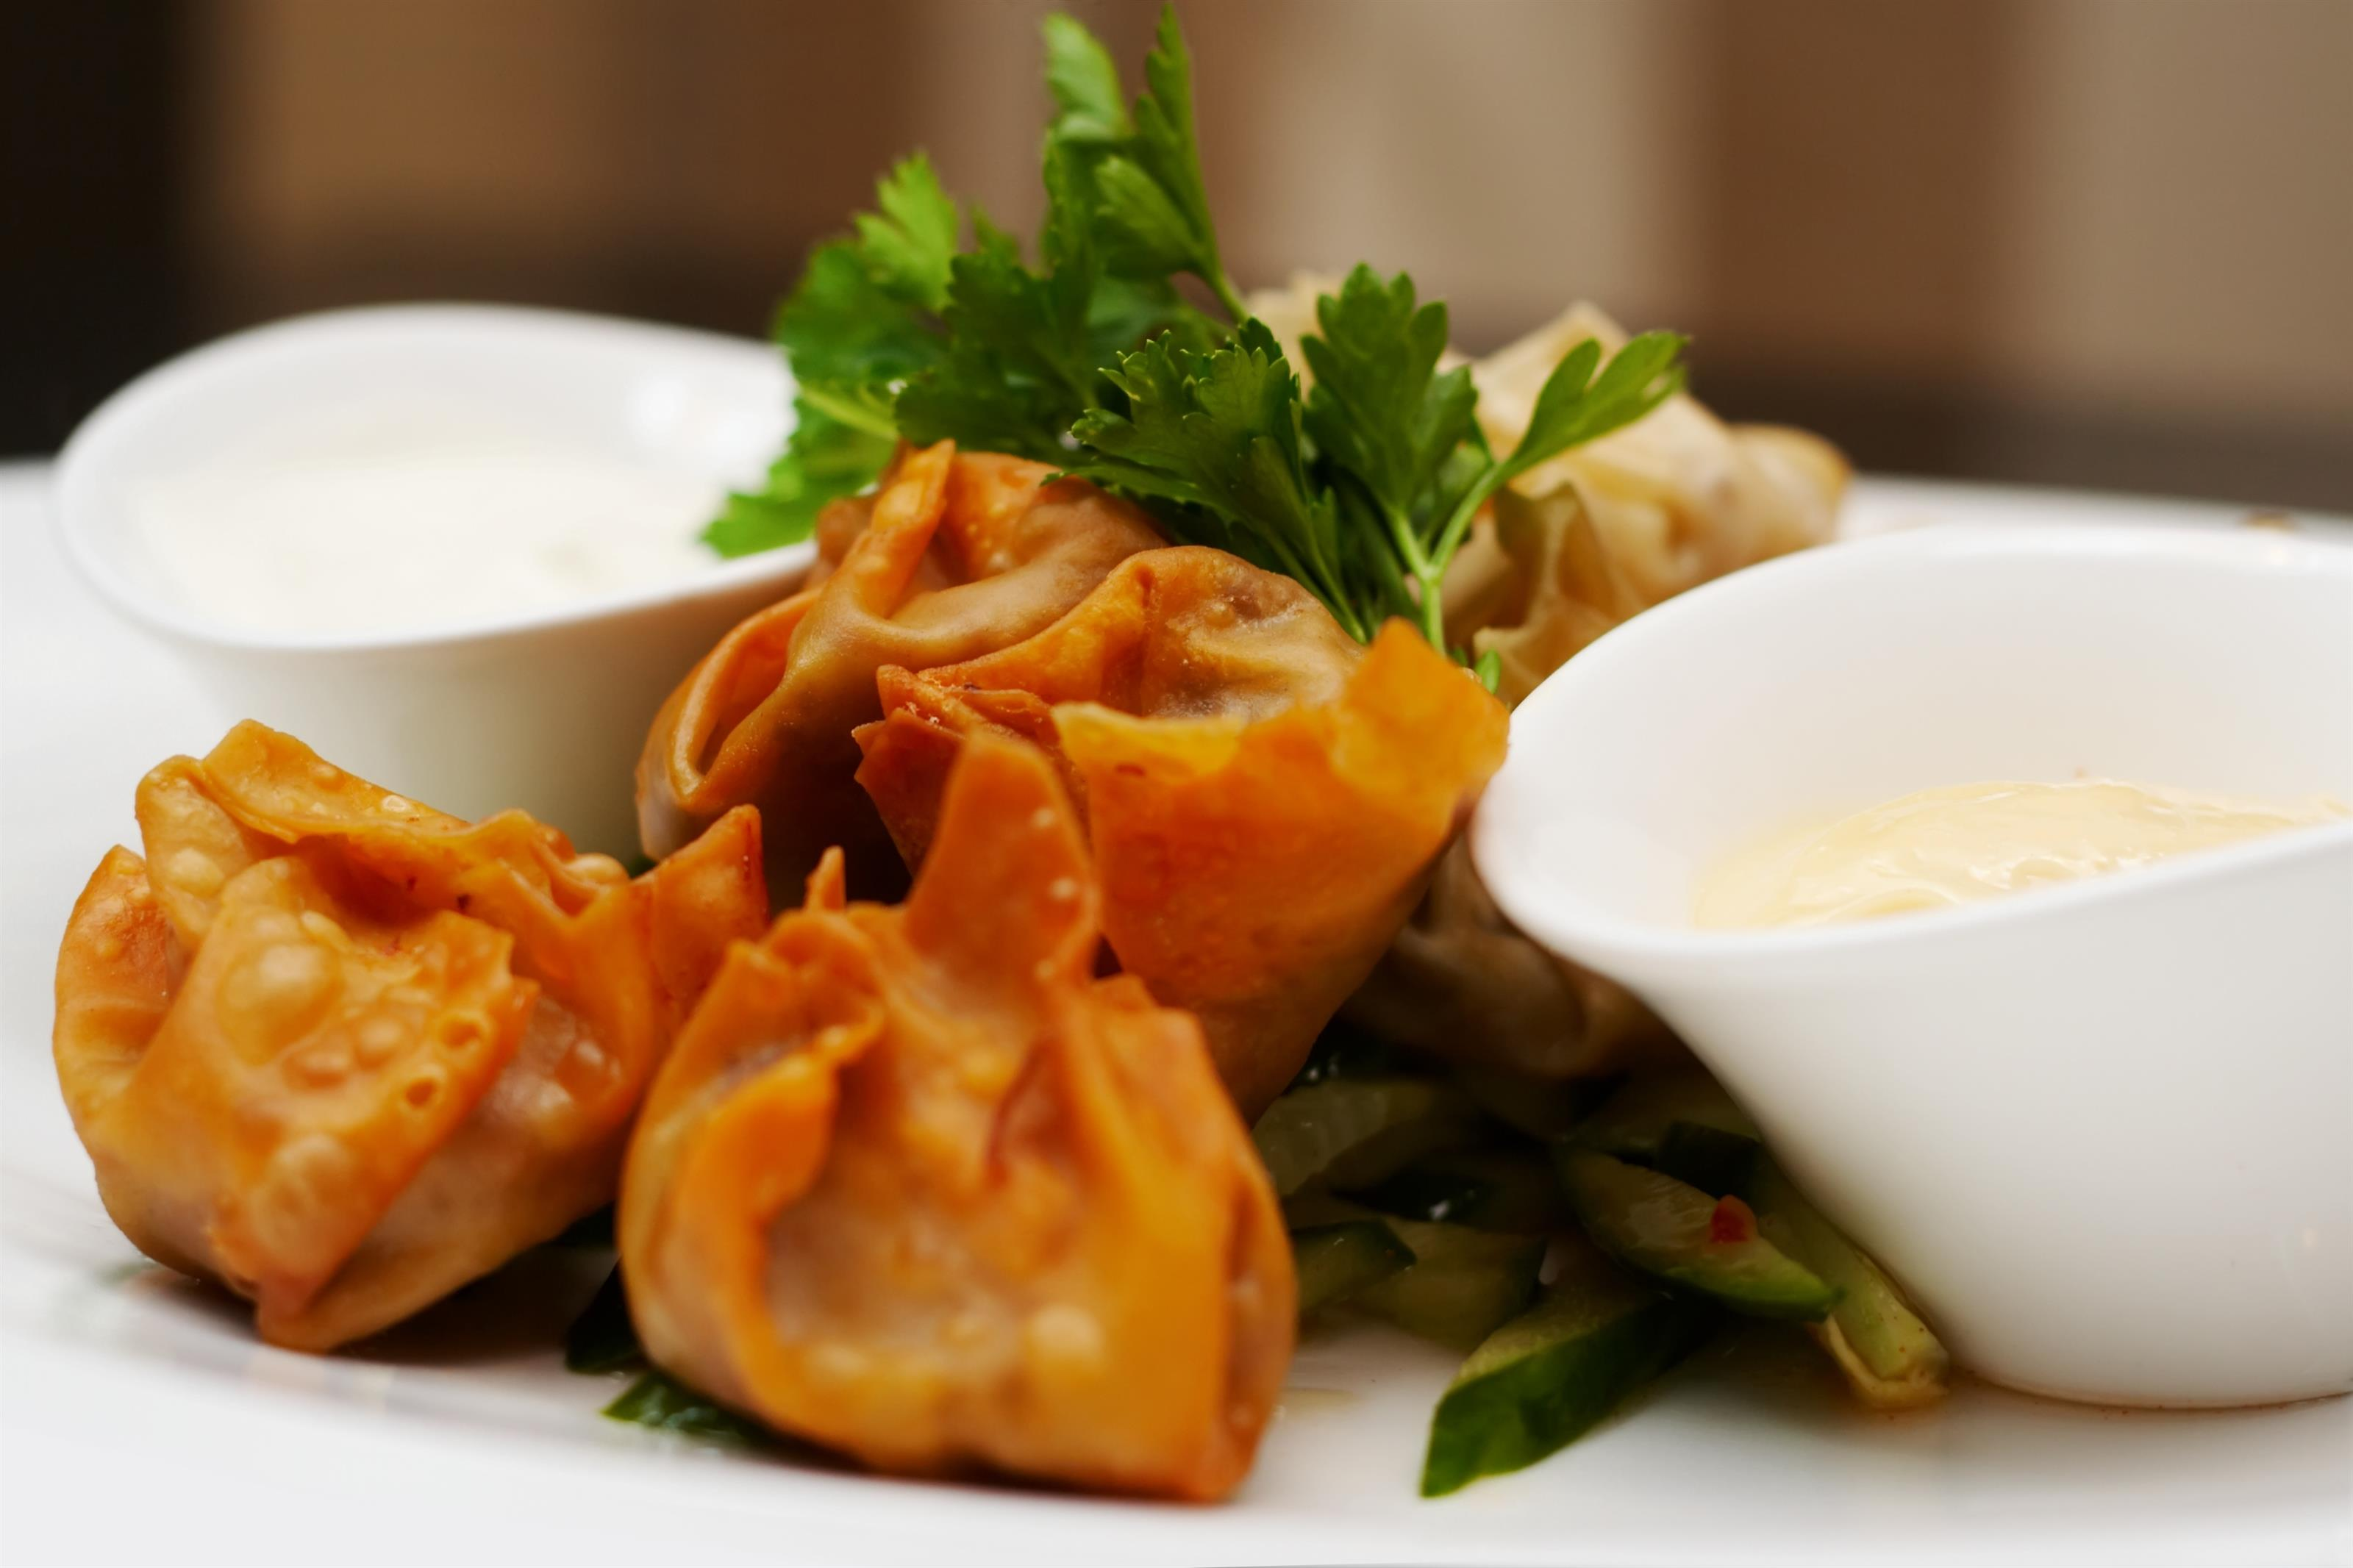 Crab Rangoon: Crispy fried wonton filled with cream cheese and real crab meat.